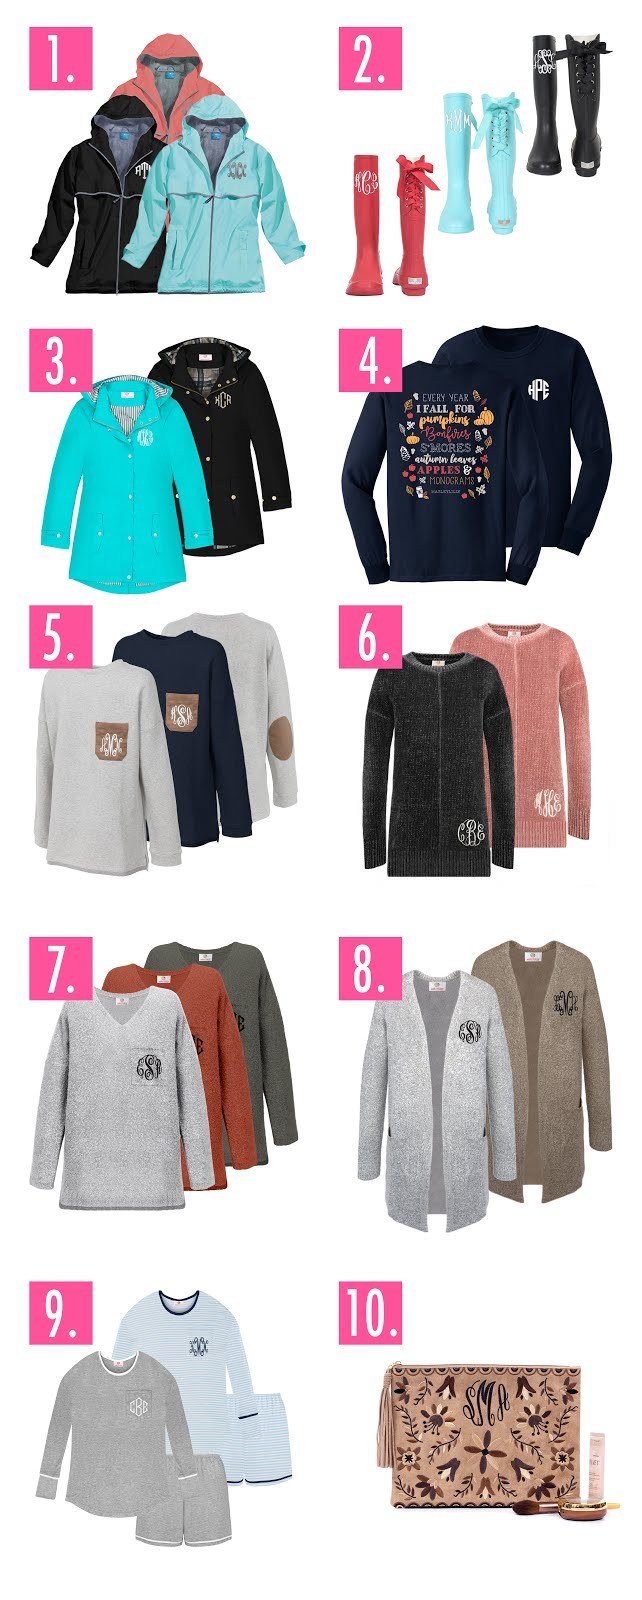 monogrammed clothing and accessories